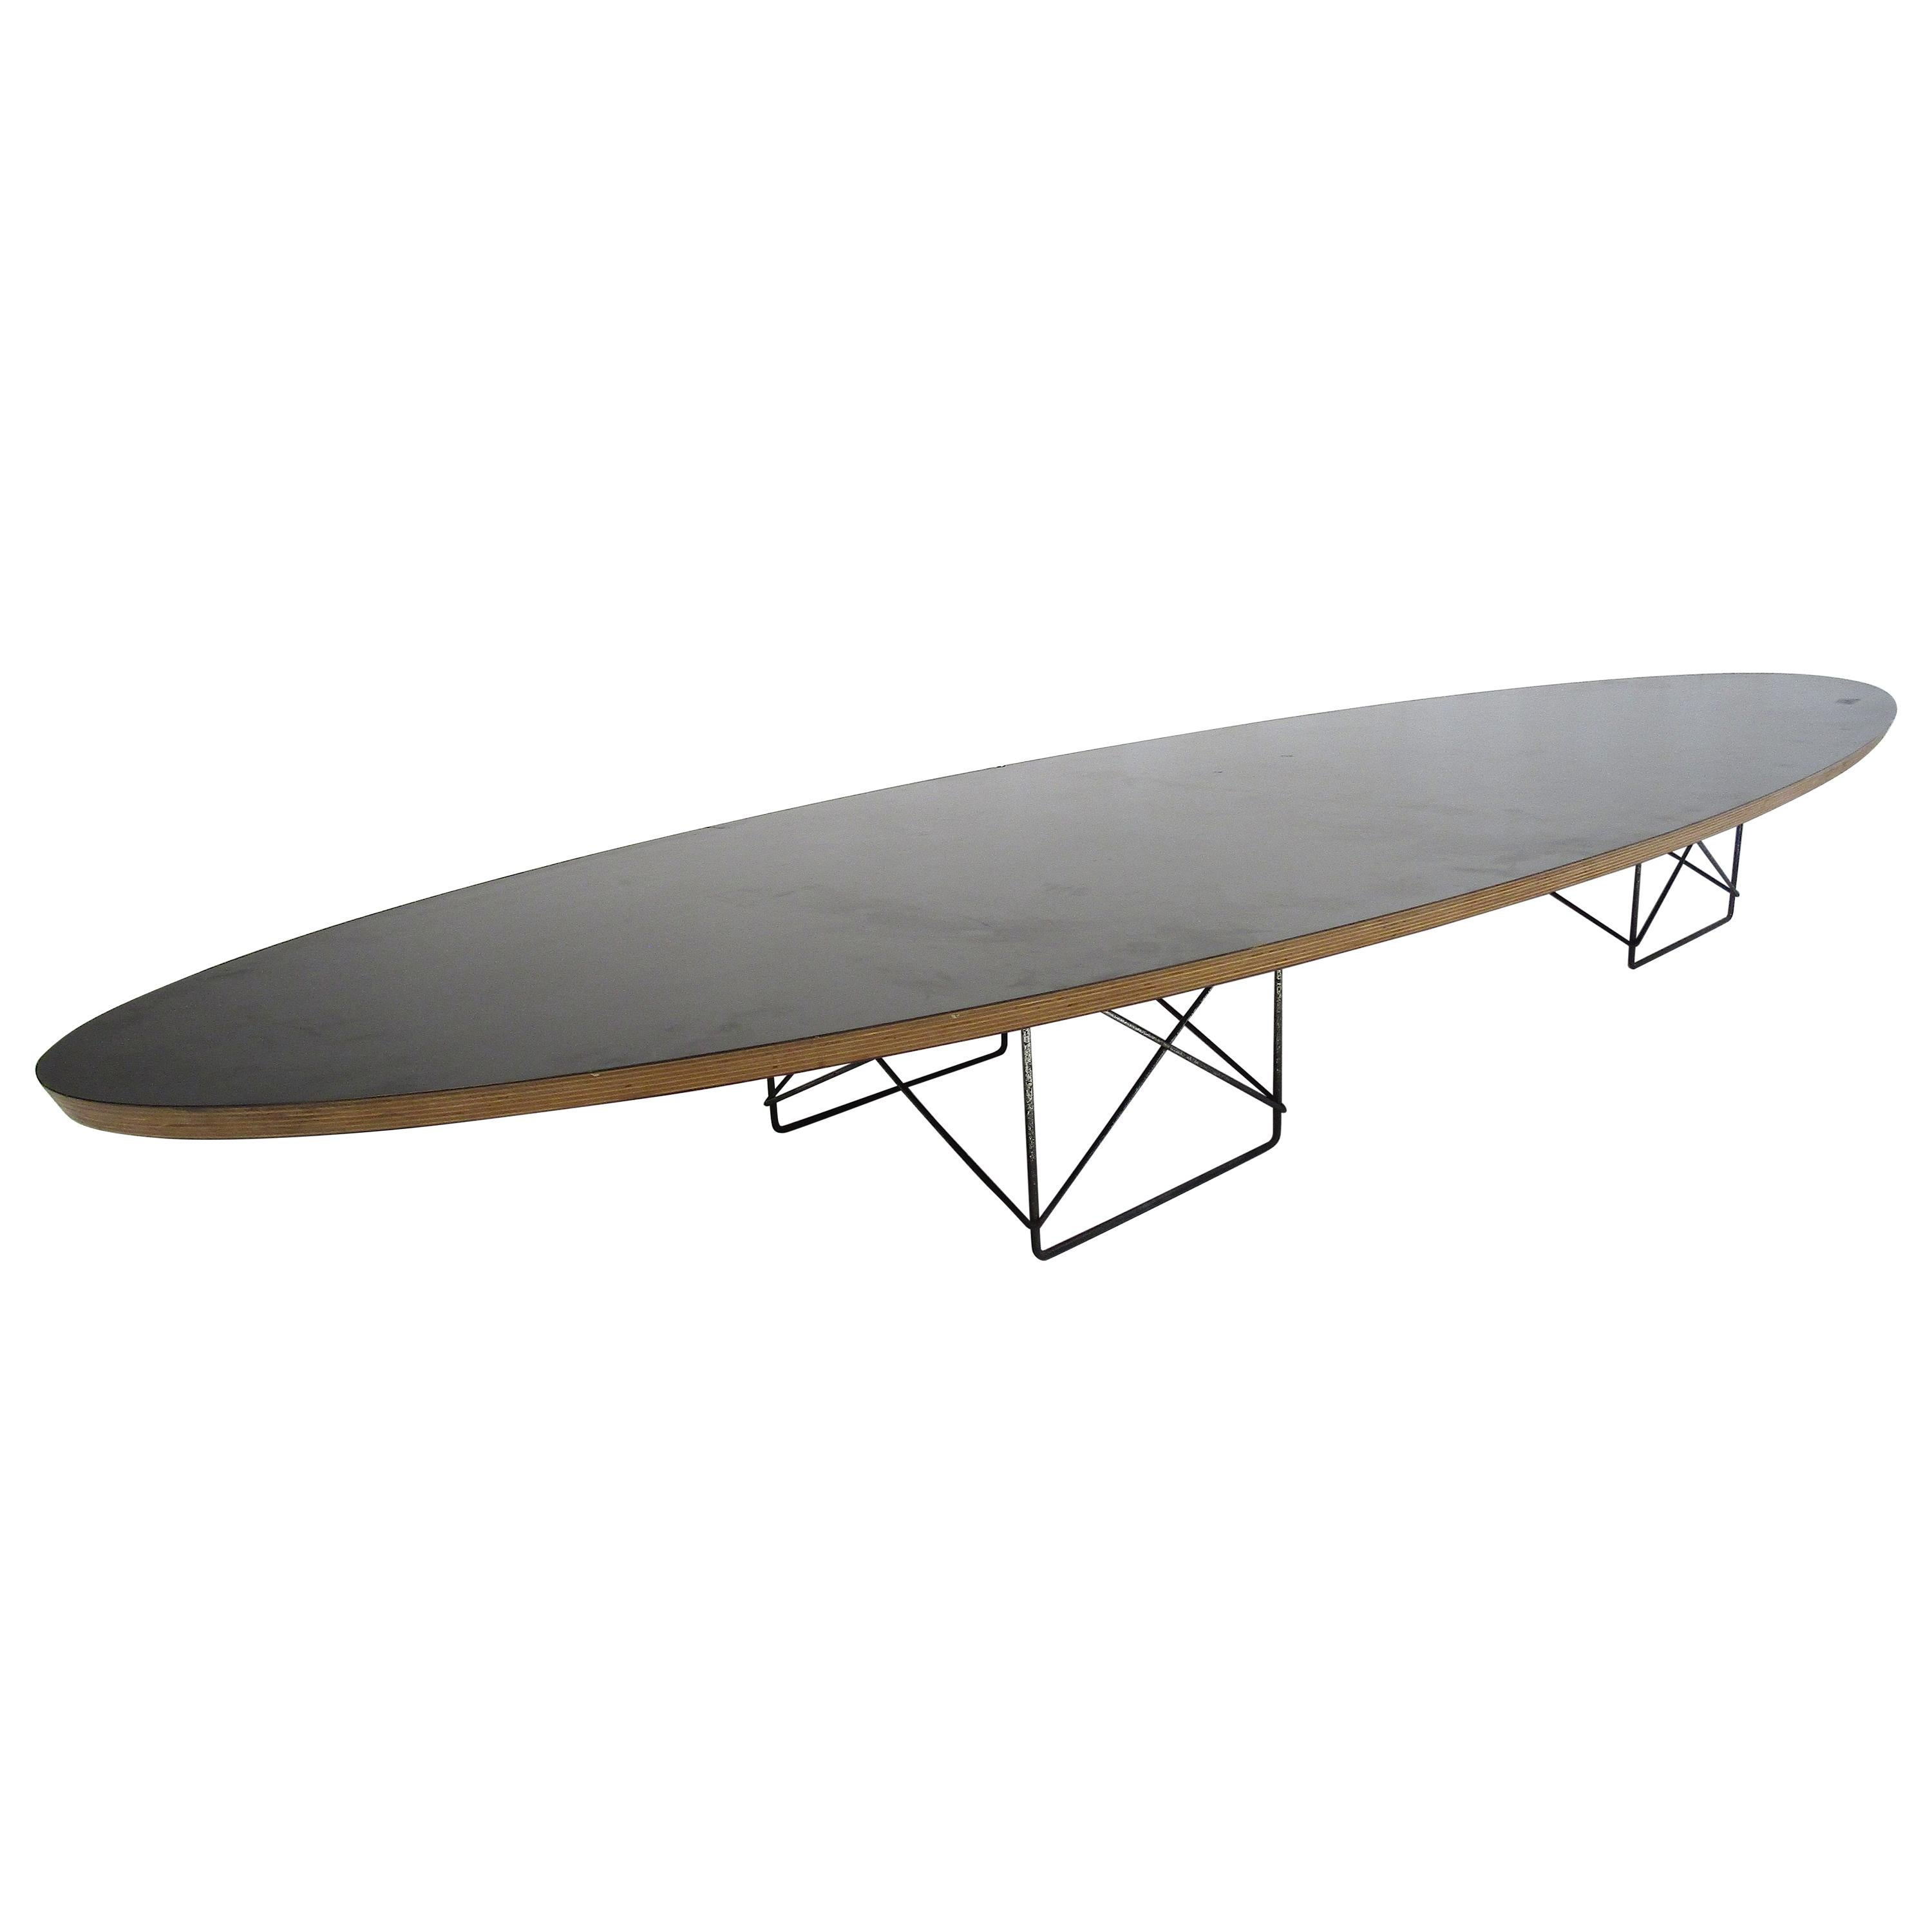 Charles & Ray Eames Surfboard Coffee Table for Herman Miller